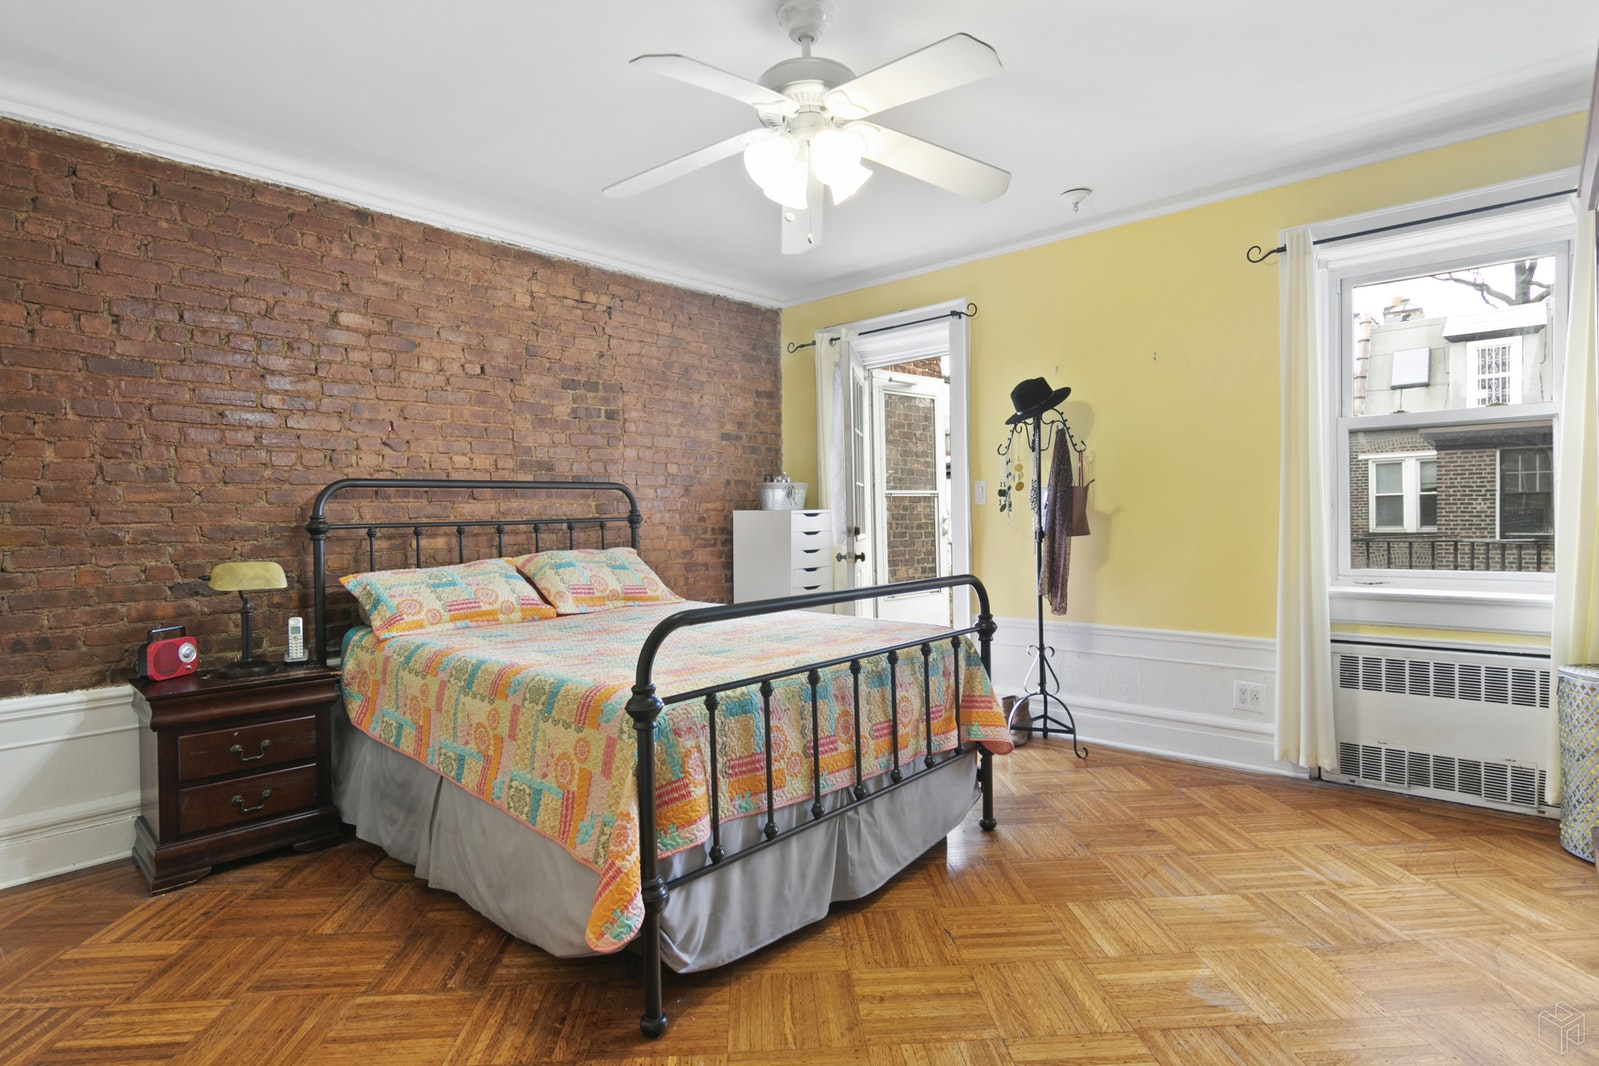 2108 Kenmore Terrace, Flatbush, Brooklyn, NY, 11226, $1,650,000, Property For Sale, Halstead Real Estate, Photo 4